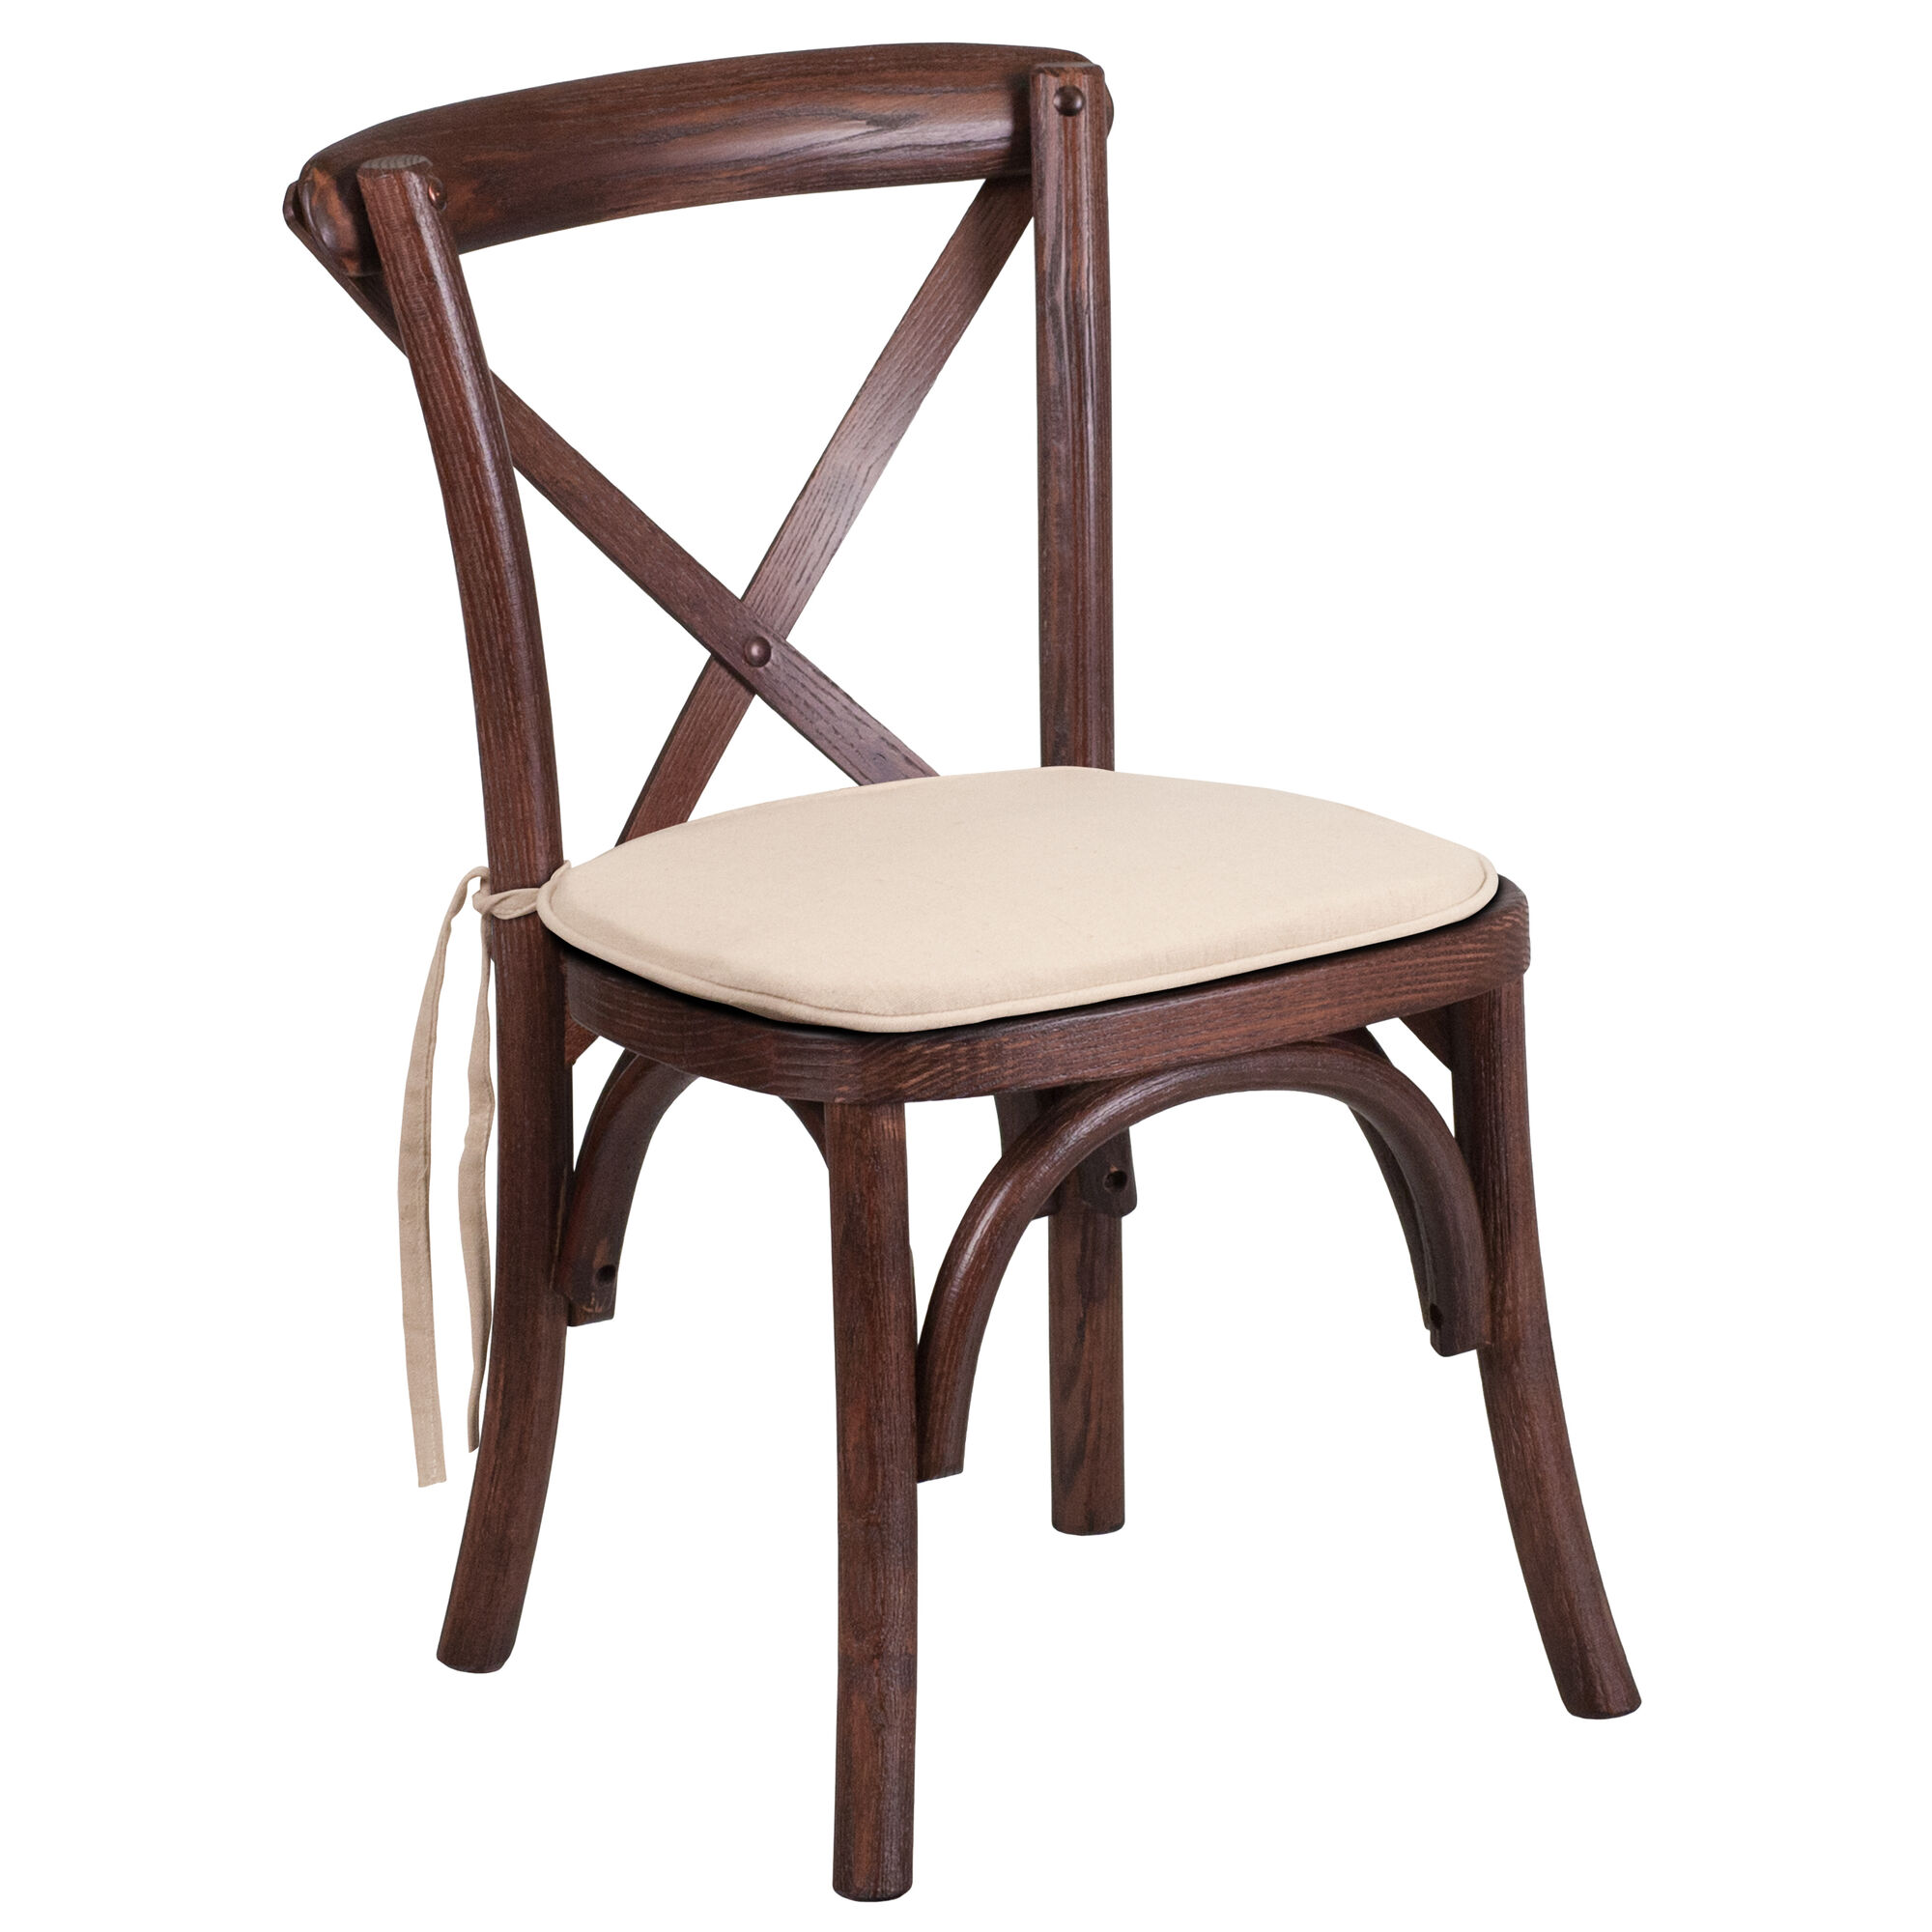 Wondrous Hercules Series Stackable Kids Mahogany Wood Cross Back Chair With Cushion Andrewgaddart Wooden Chair Designs For Living Room Andrewgaddartcom